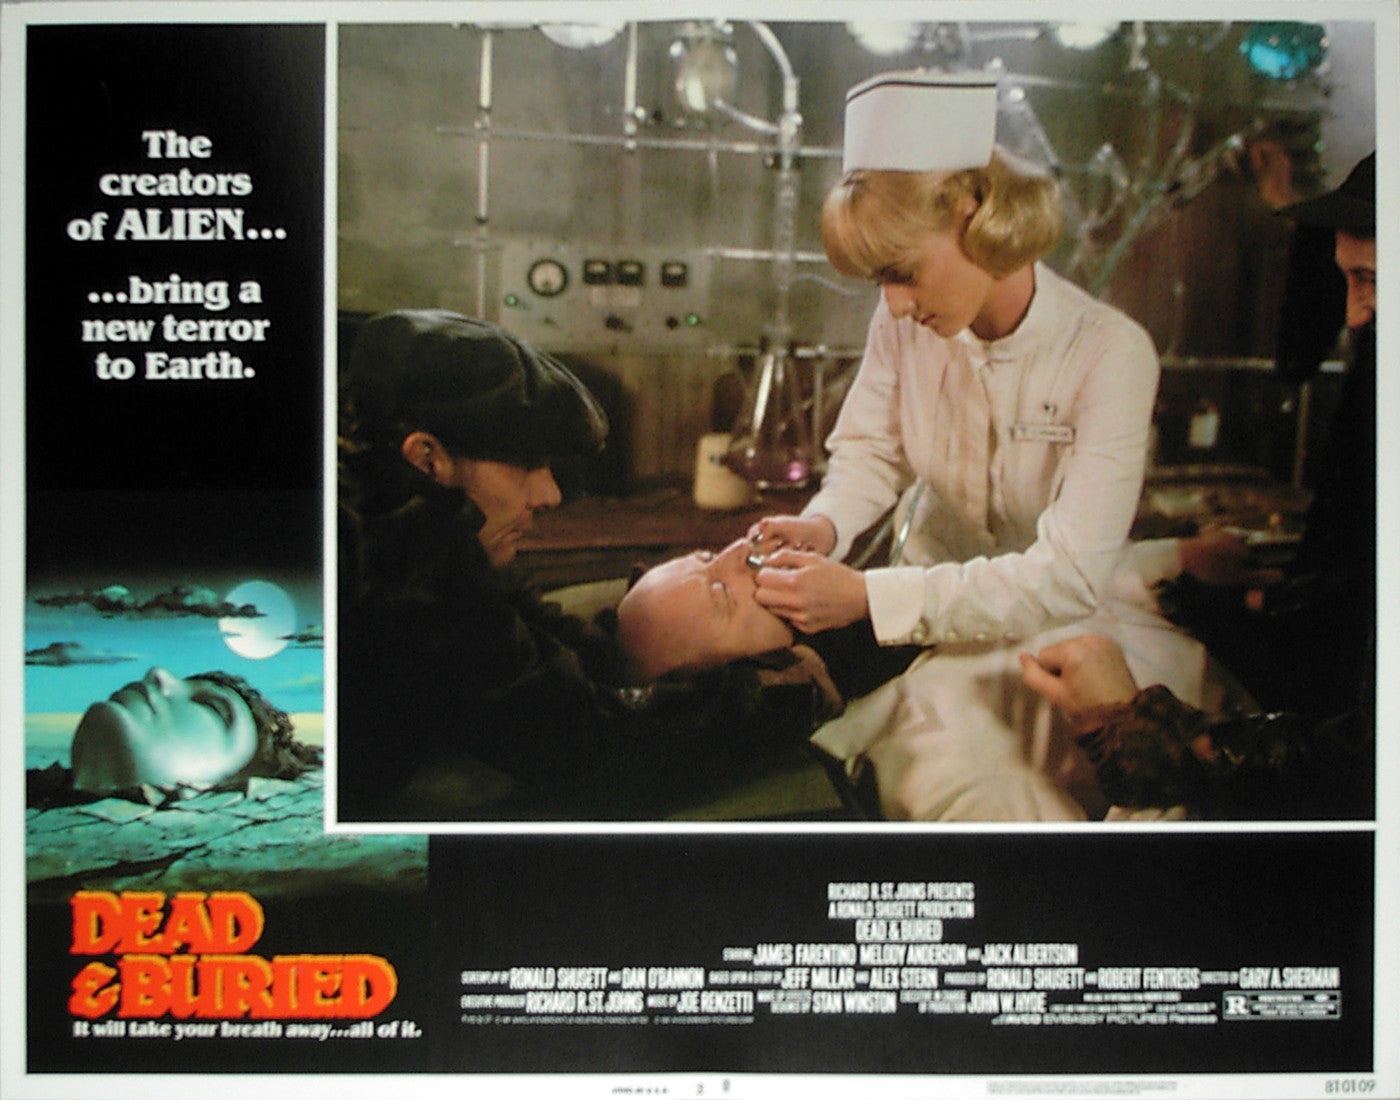 DEAD & BURIED - US lobby card v2